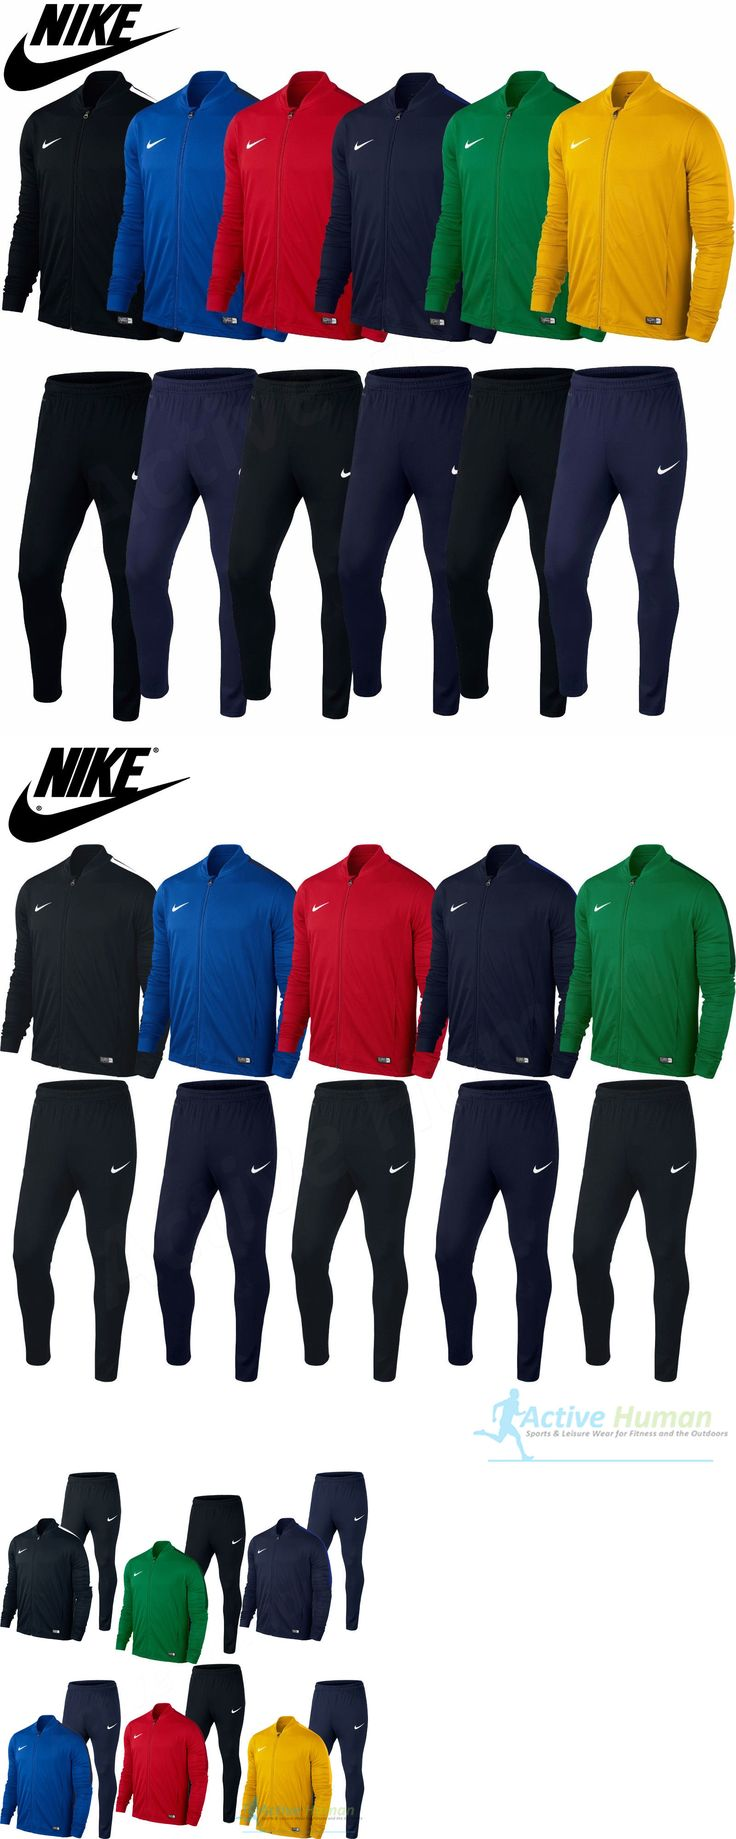 Track Suits 59339: Mens Nike Tracksuit Full Zip Jogging Football Top Bottoms Jacket Pants S M L Xl -> BUY IT NOW ONLY: $56.52 on eBay!